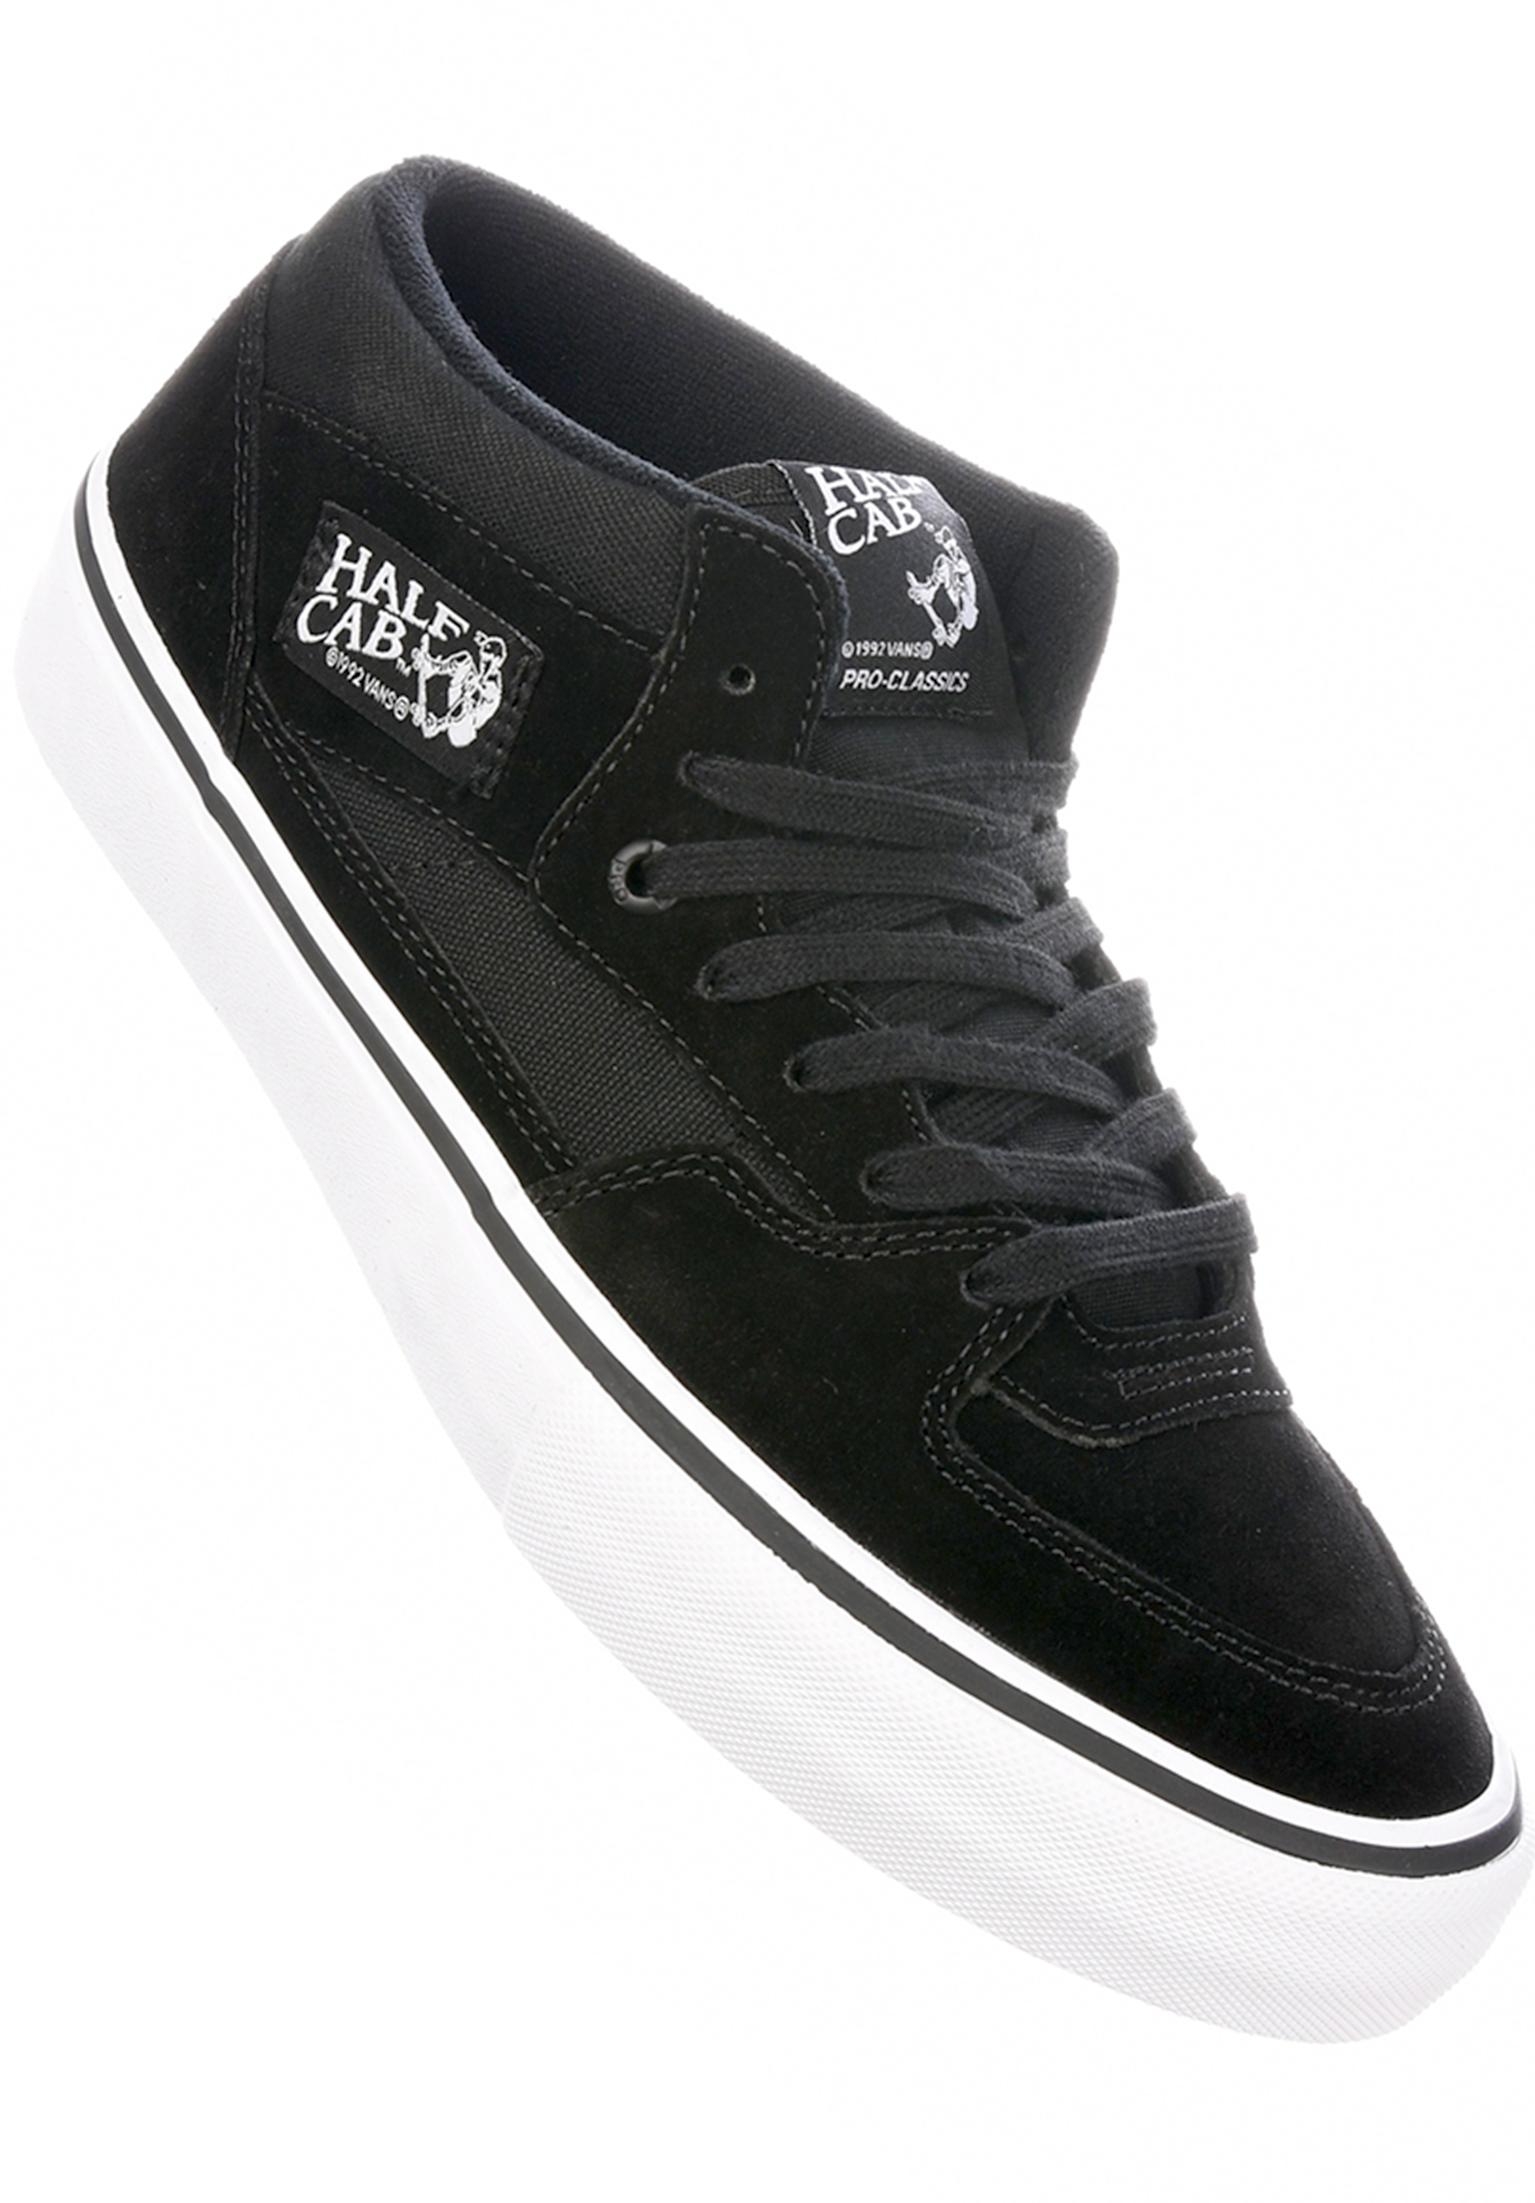 207503f437d881 Half Cab Pro Vans All Shoes in black-black-white for Men